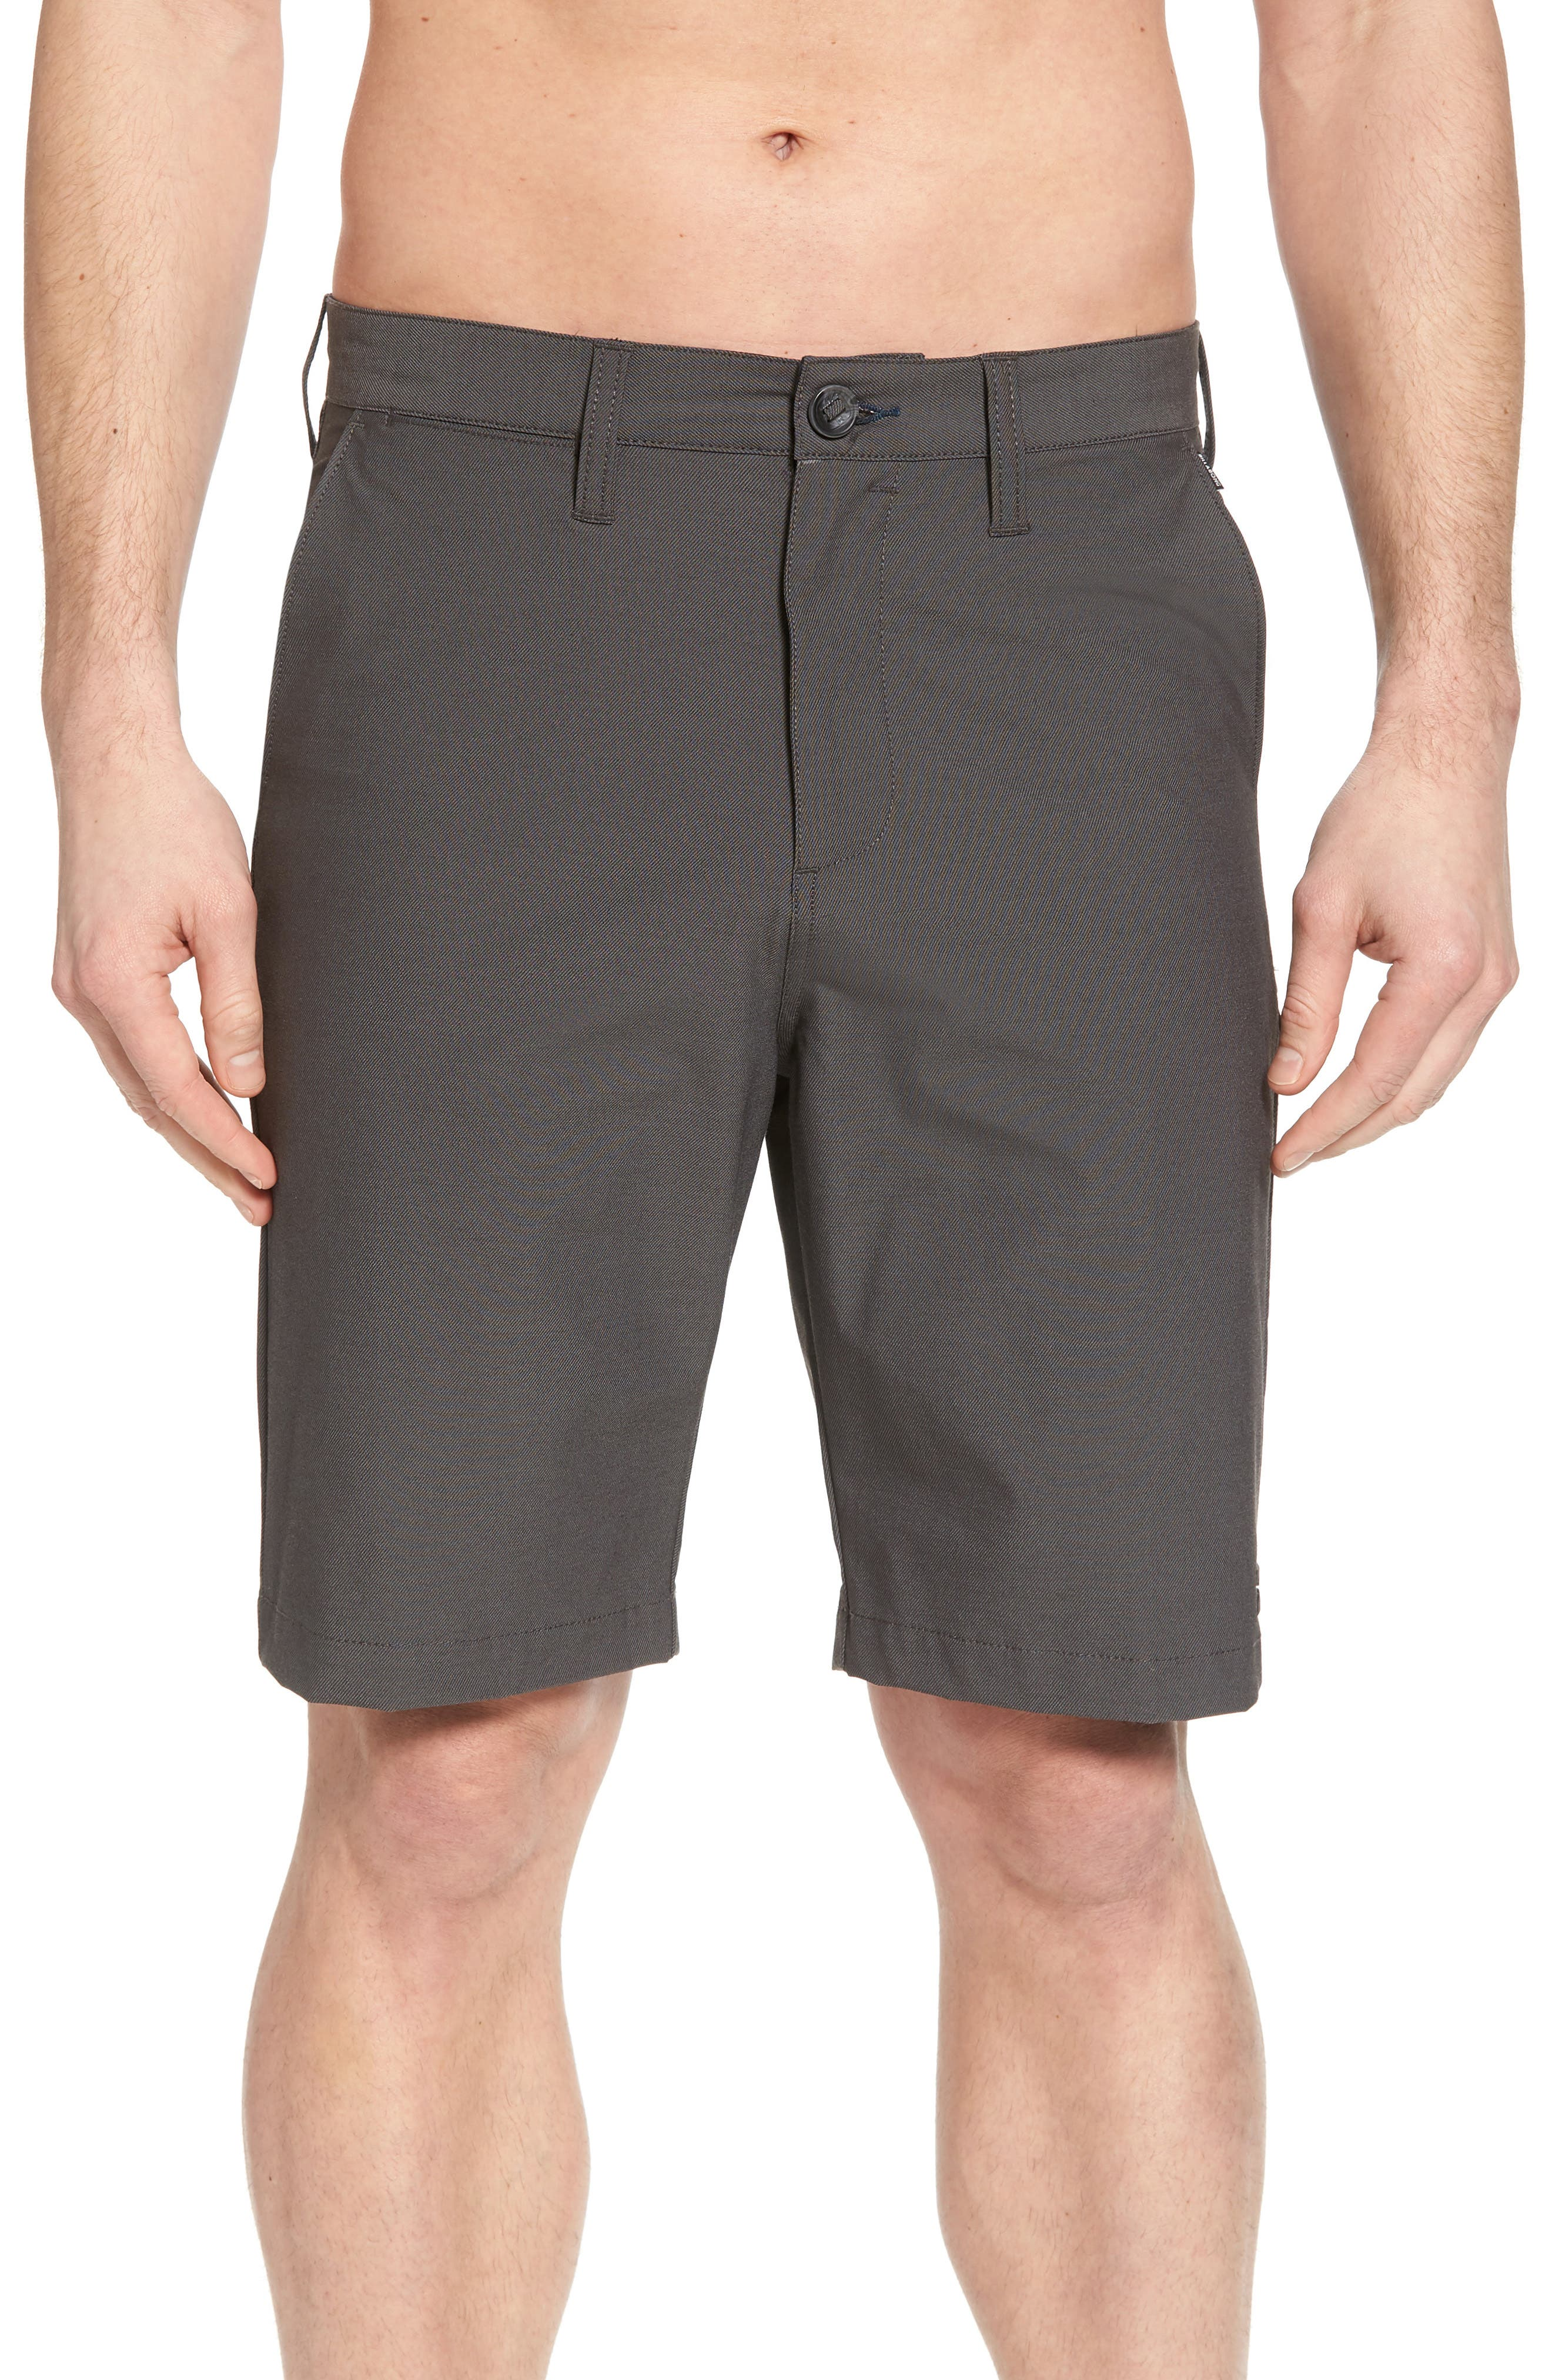 Crossfire X Submersible Twill Shorts,                             Alternate thumbnail 4, color,                             Black